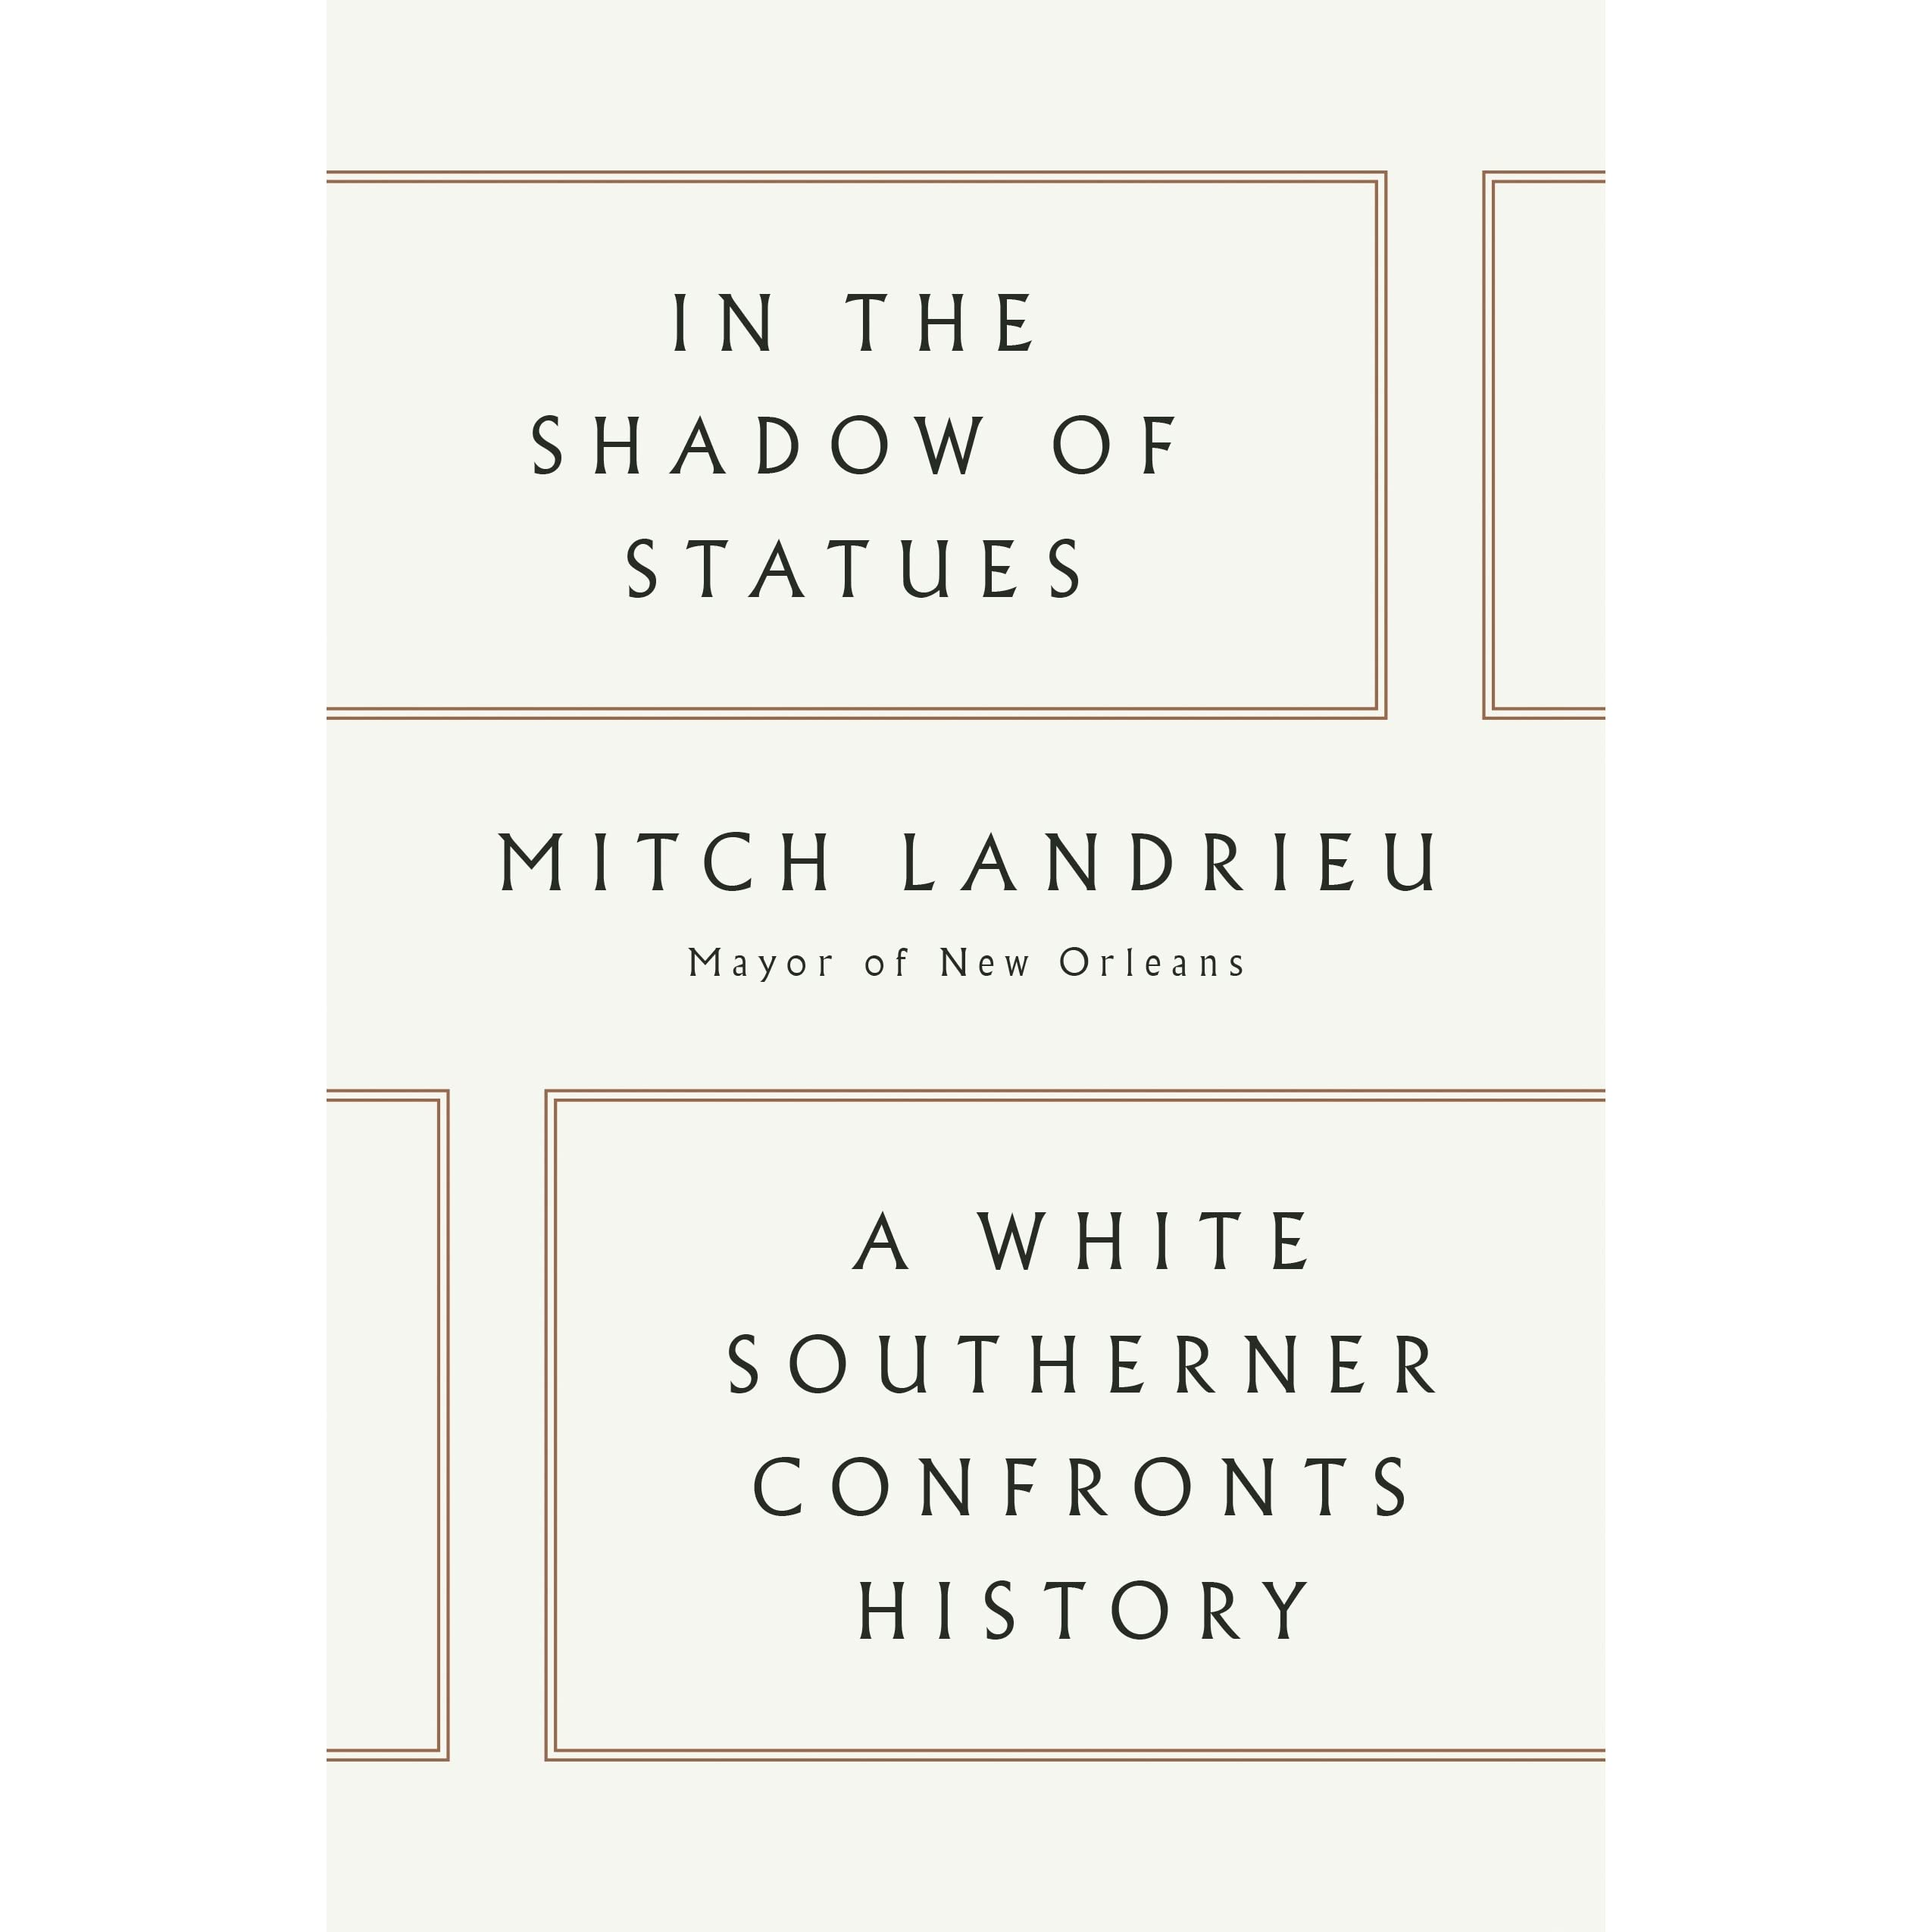 In the shadow of statues a white southerner confronts history by in the shadow of statues a white southerner confronts history by mitch landrieu fandeluxe Images